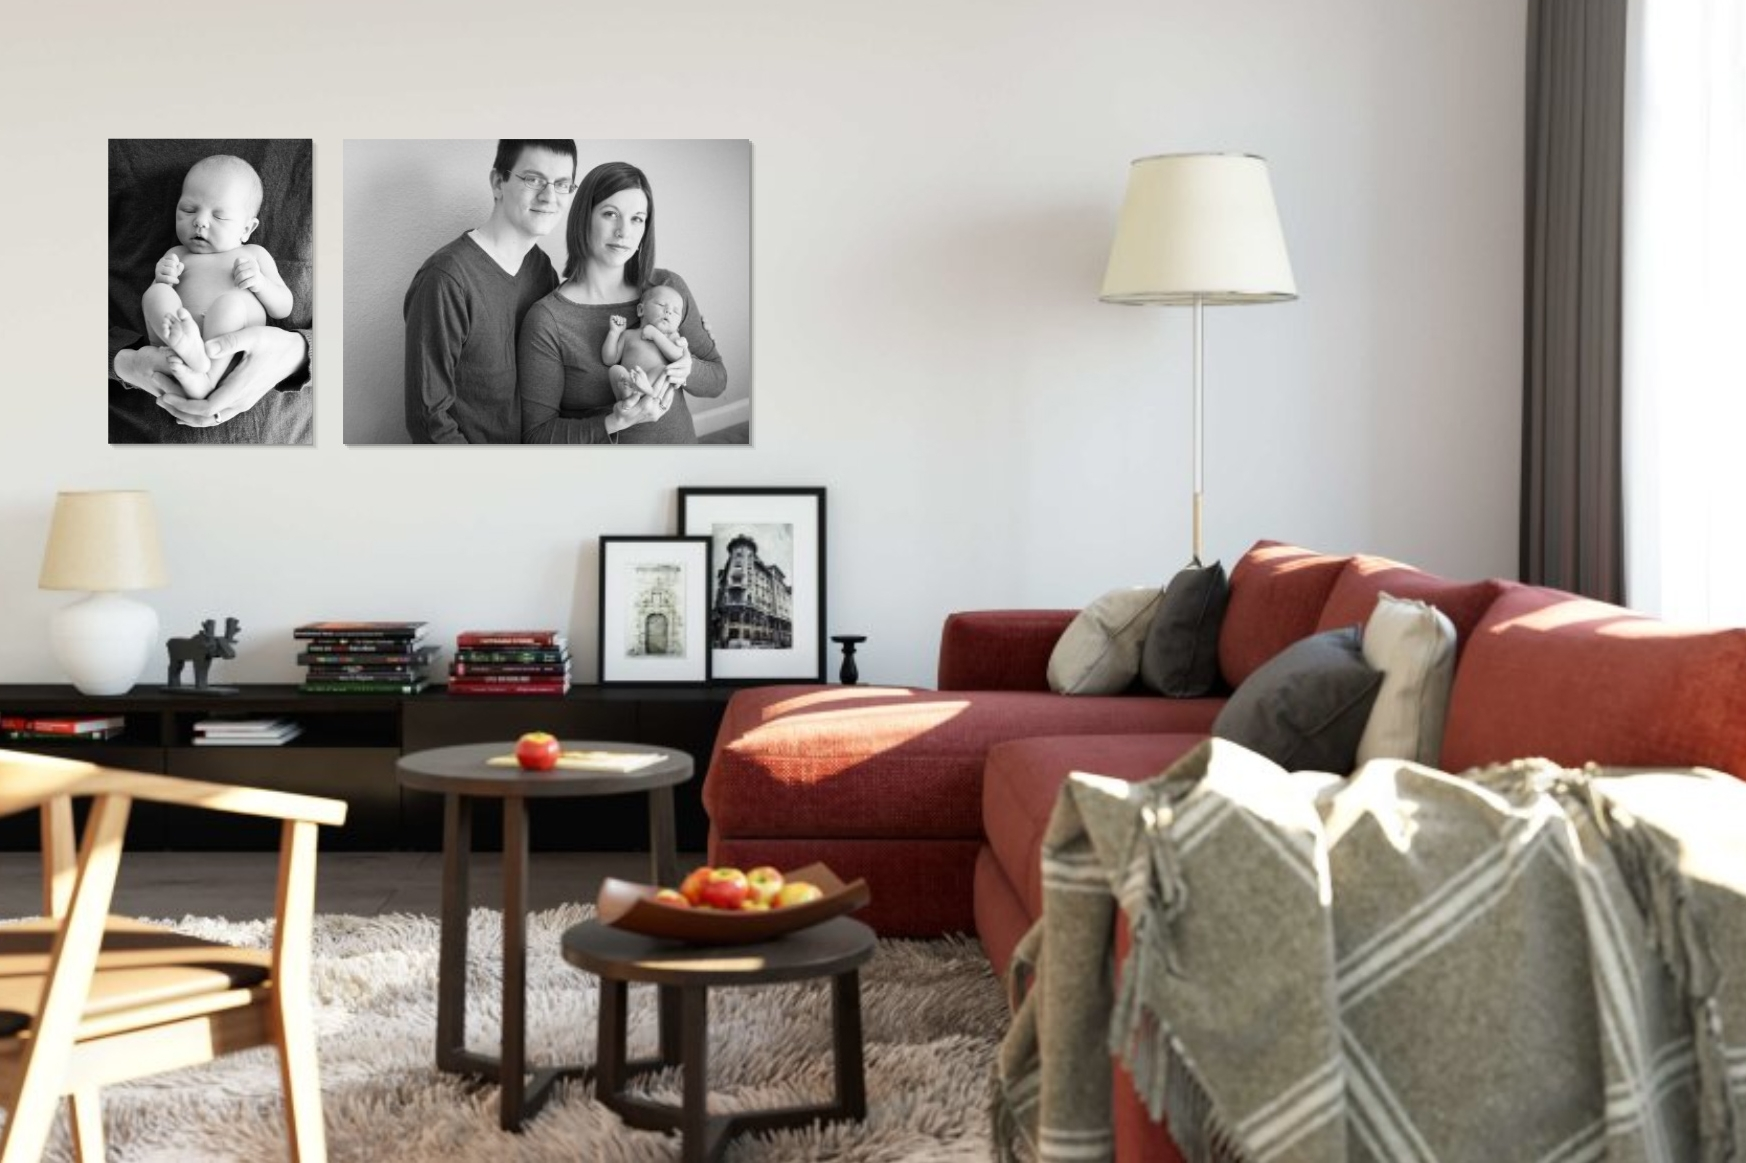 newborn-family-portraits-in-livingroom.jpg